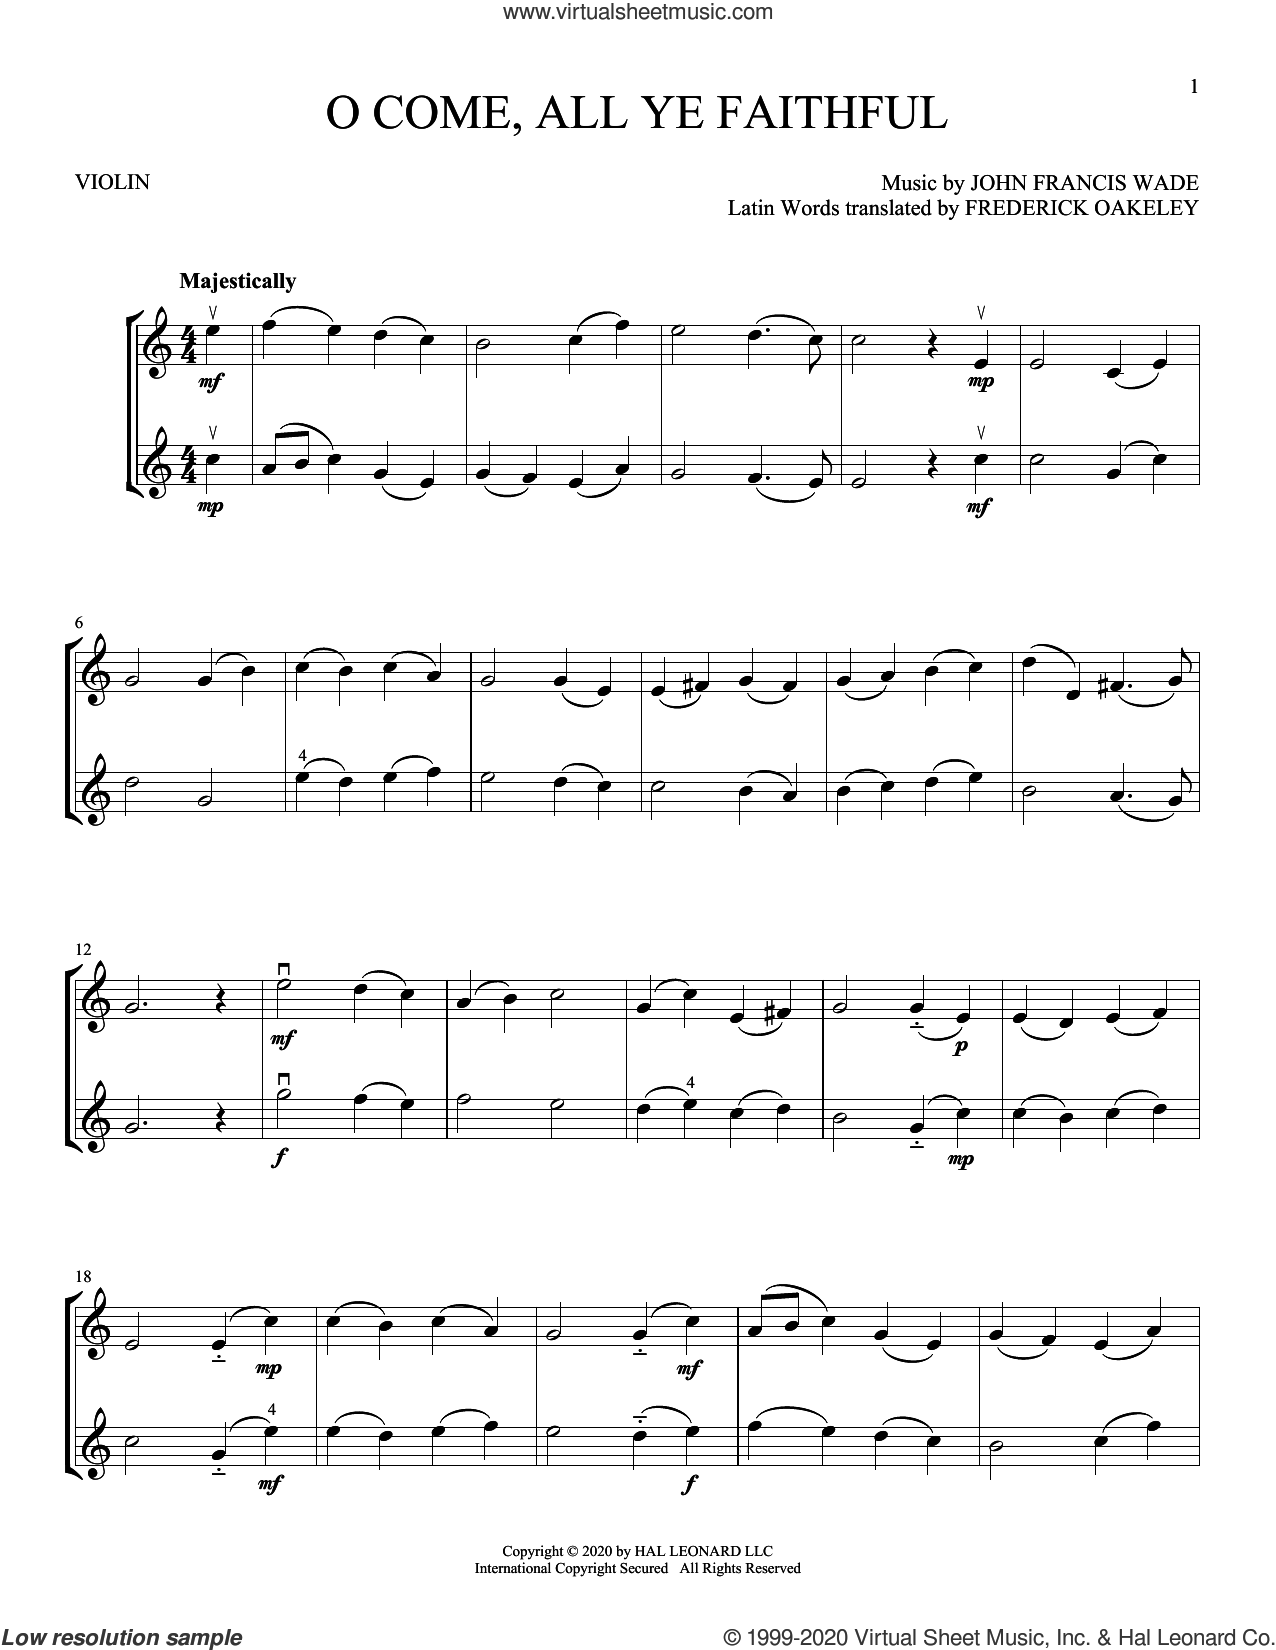 O Come, All Ye Faithful sheet music for two violins (duets, violin duets) by John Francis Wade and Frederick Oakeley, intermediate skill level